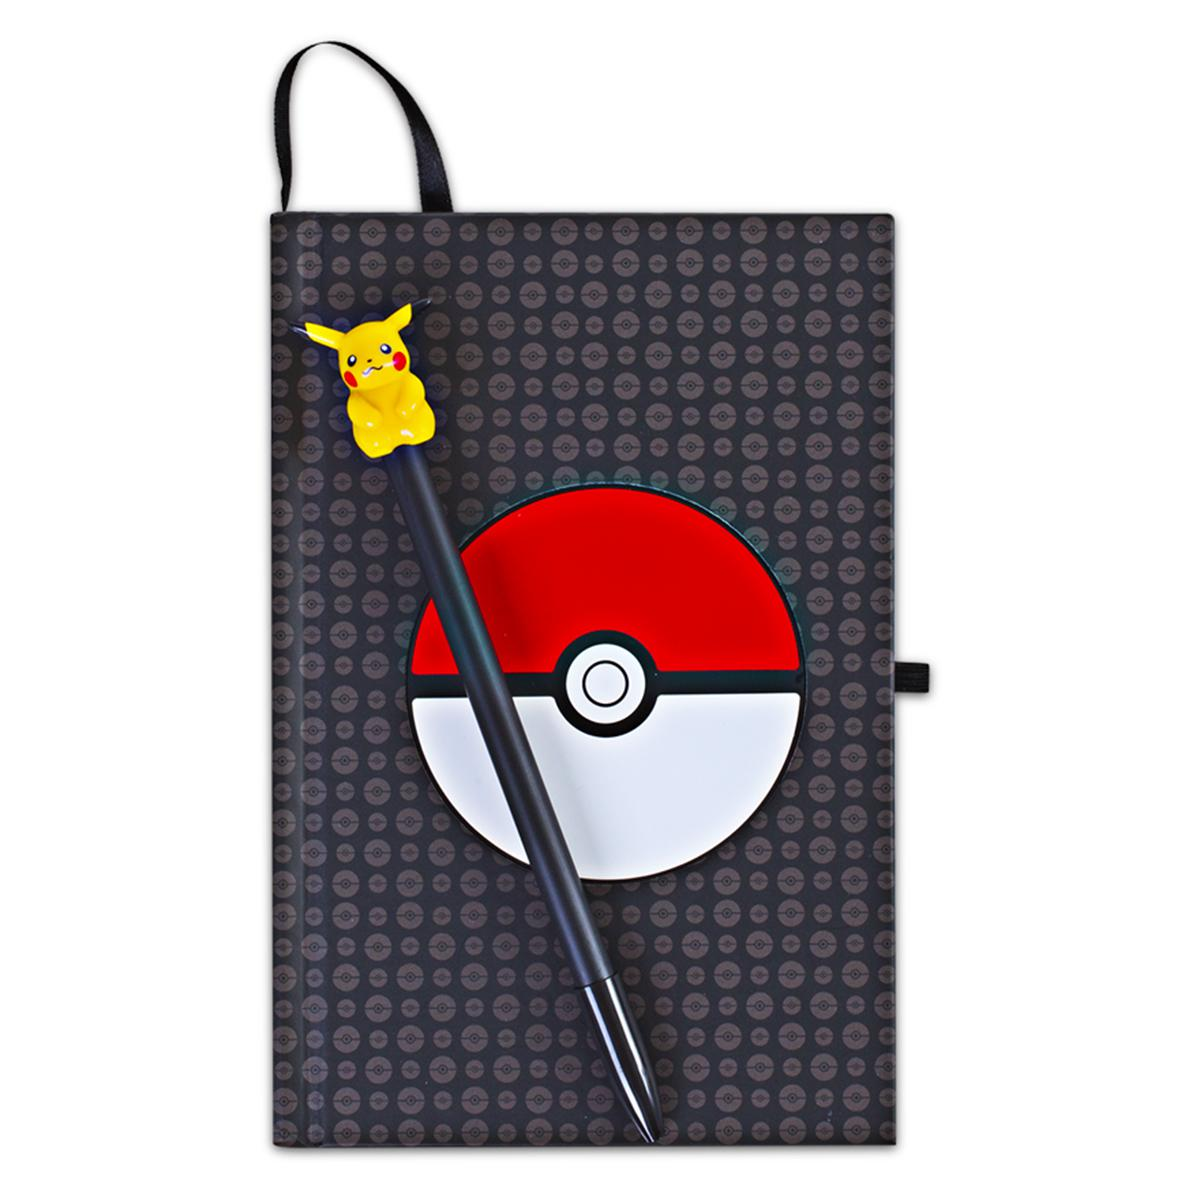 Pokémon Journal